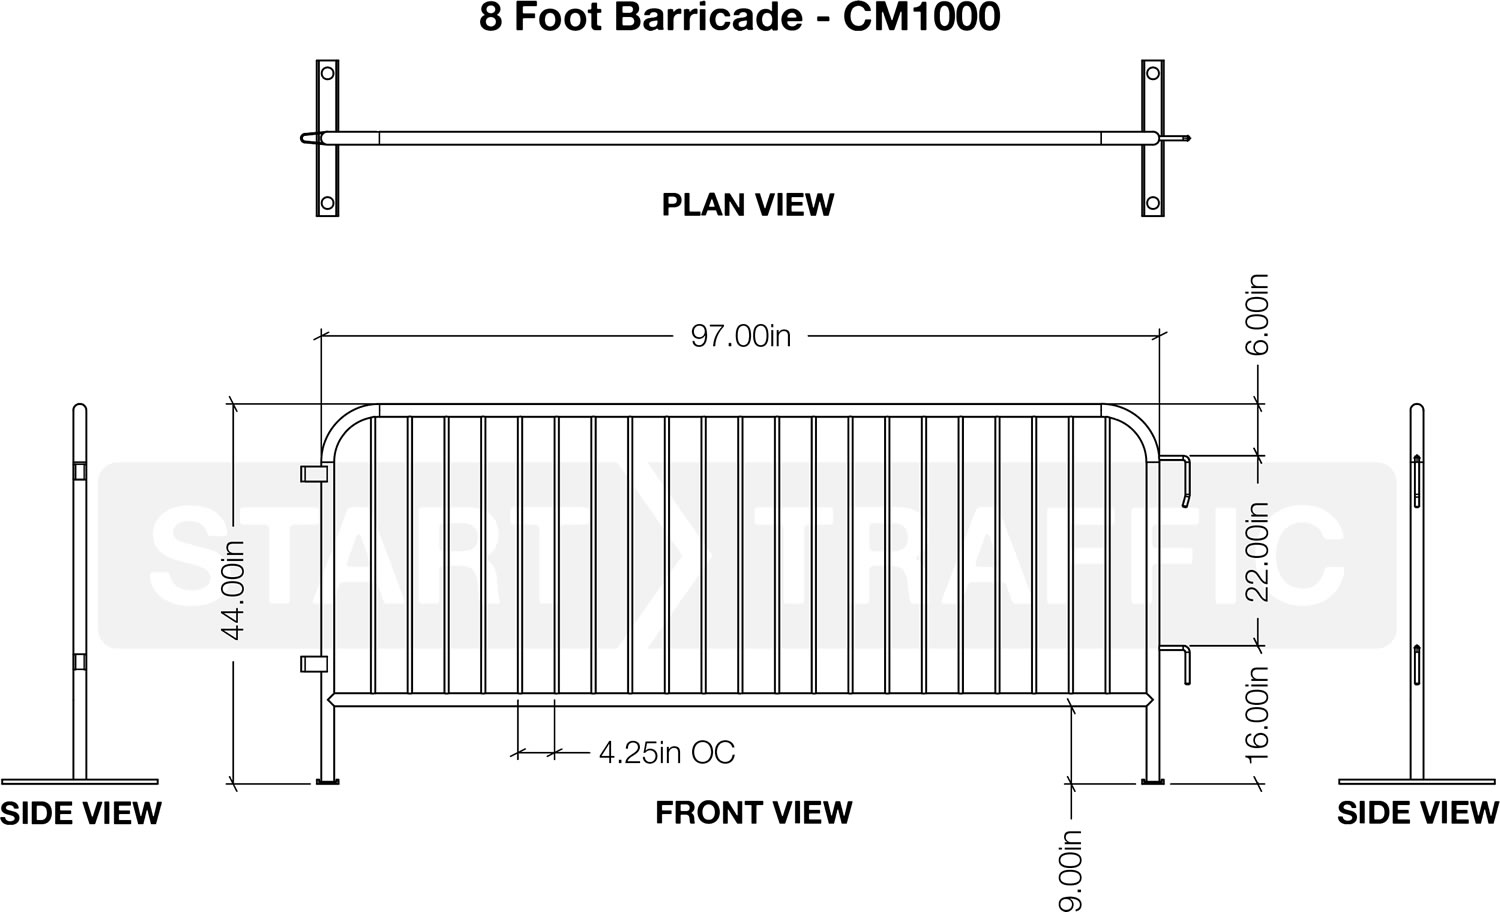 8 Foot Metal Barrier Dimensions